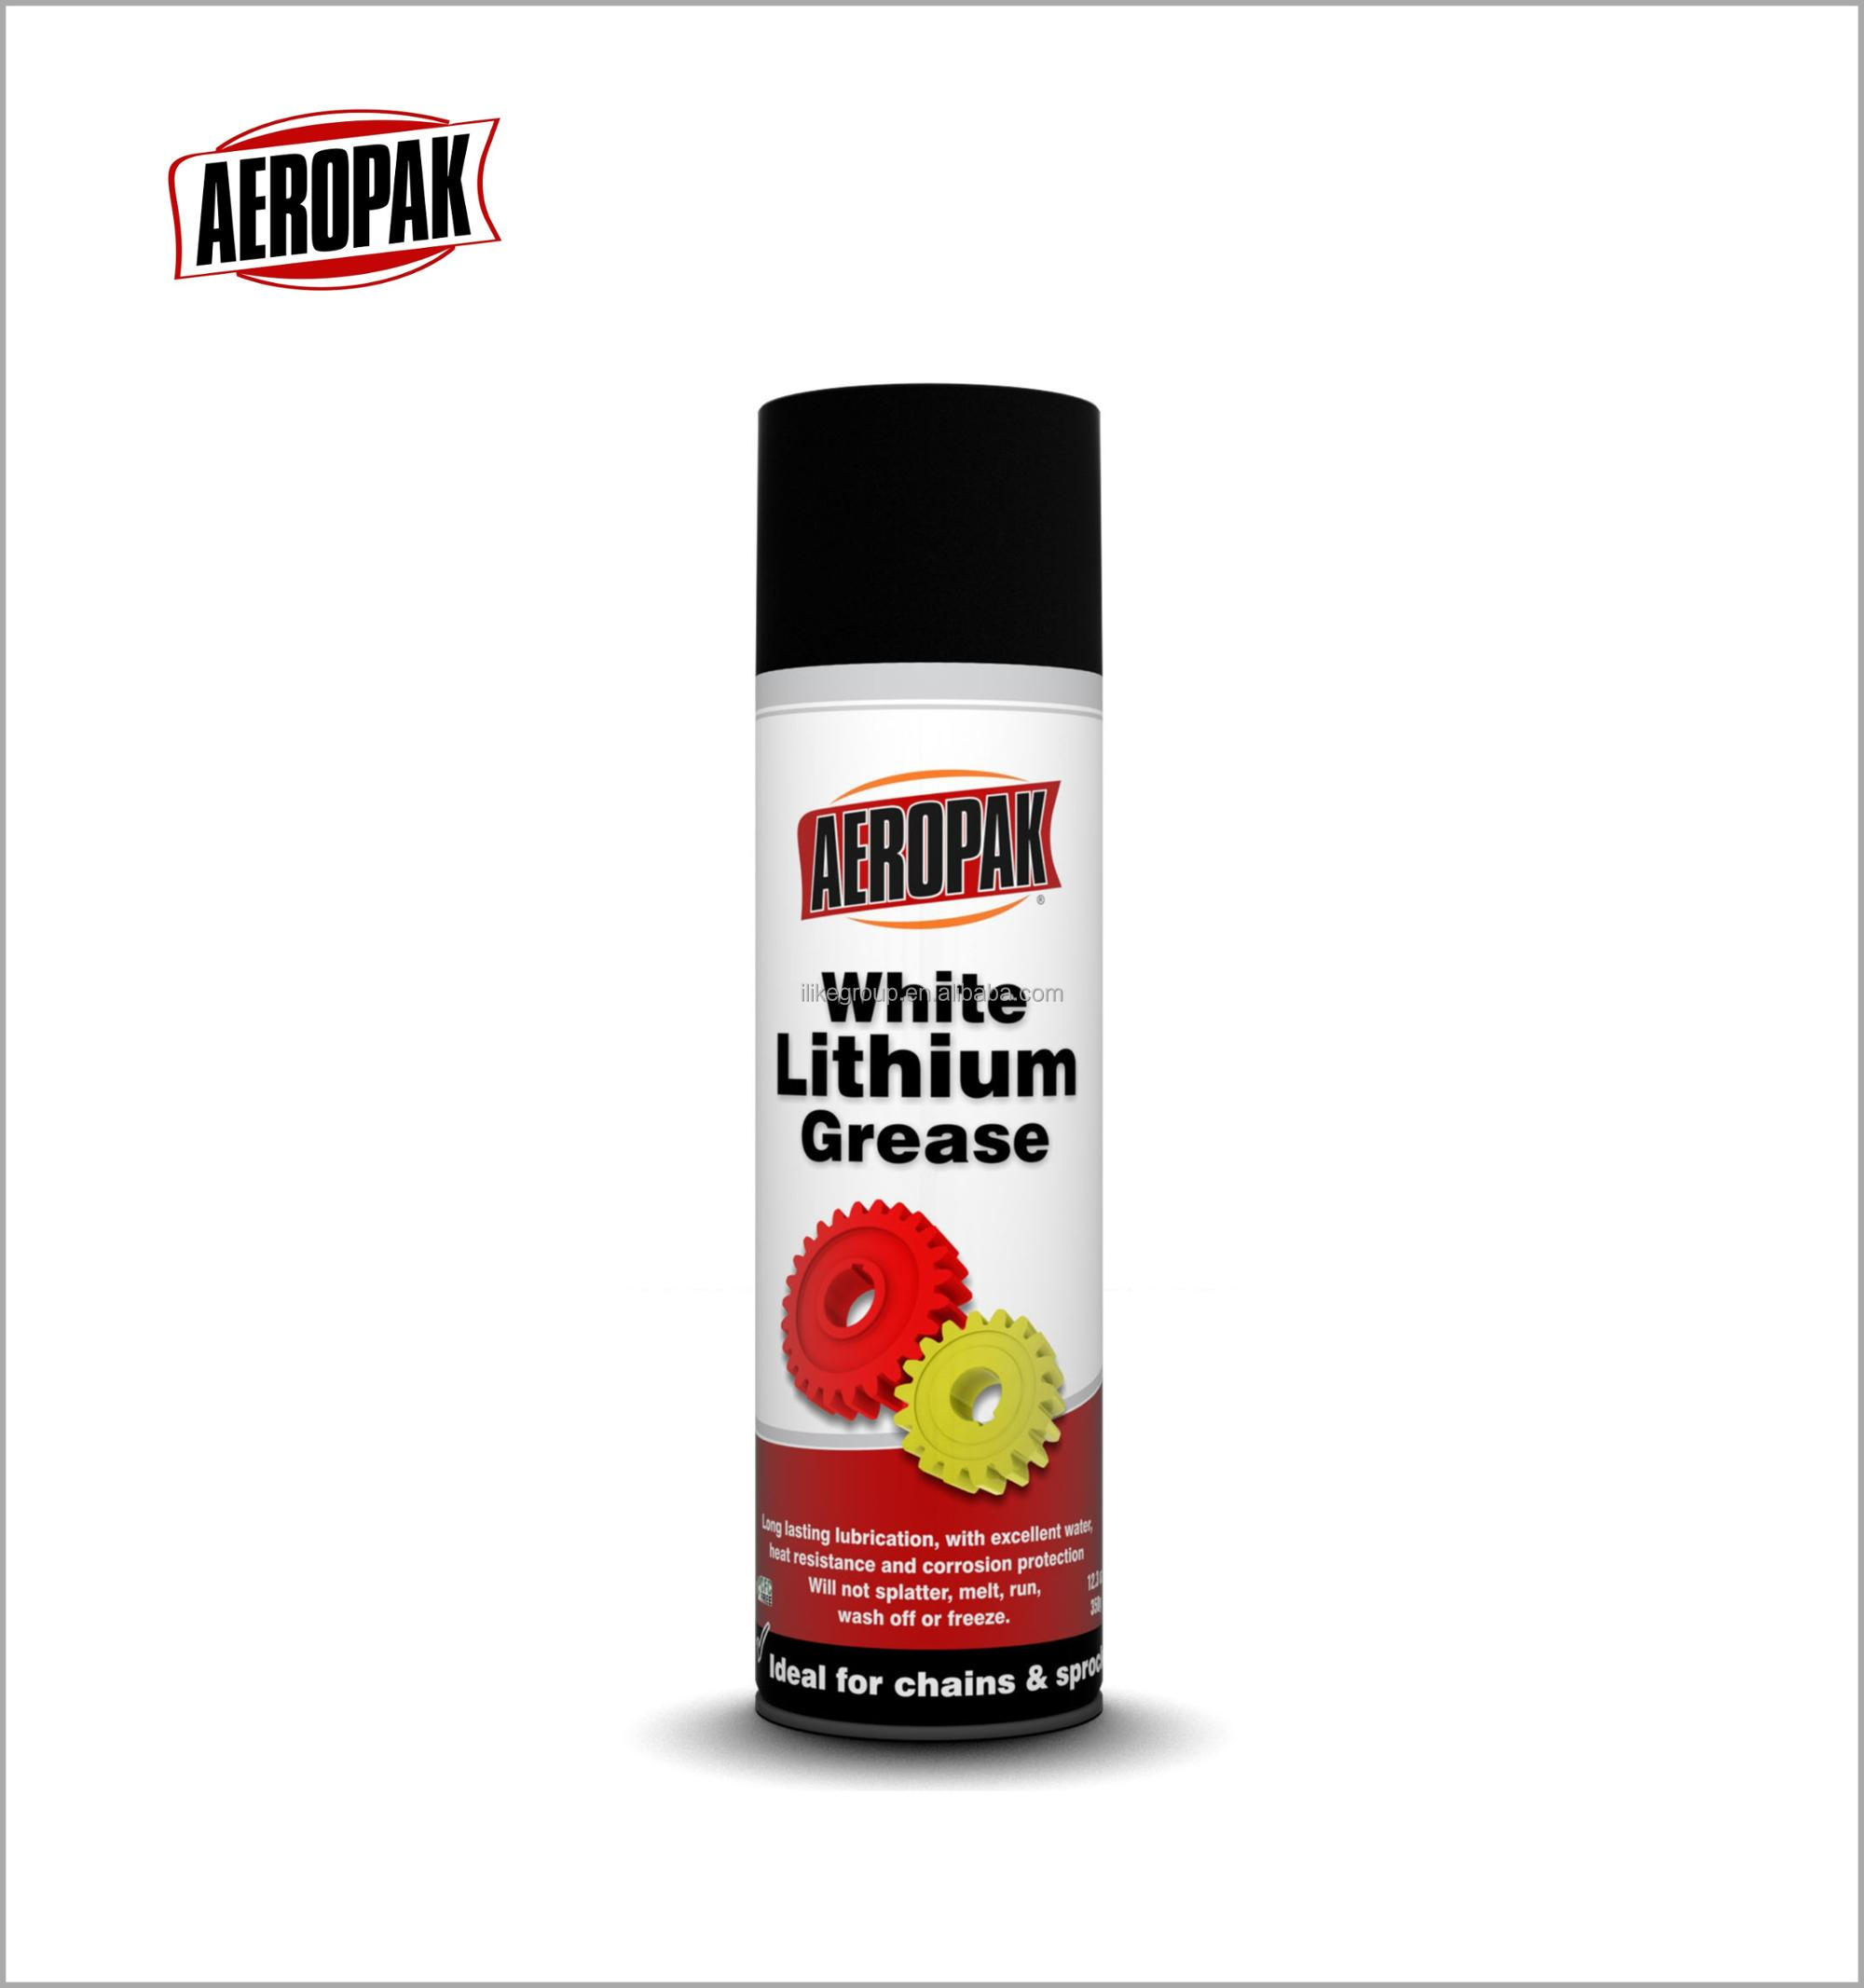 White lithium grease lubricant